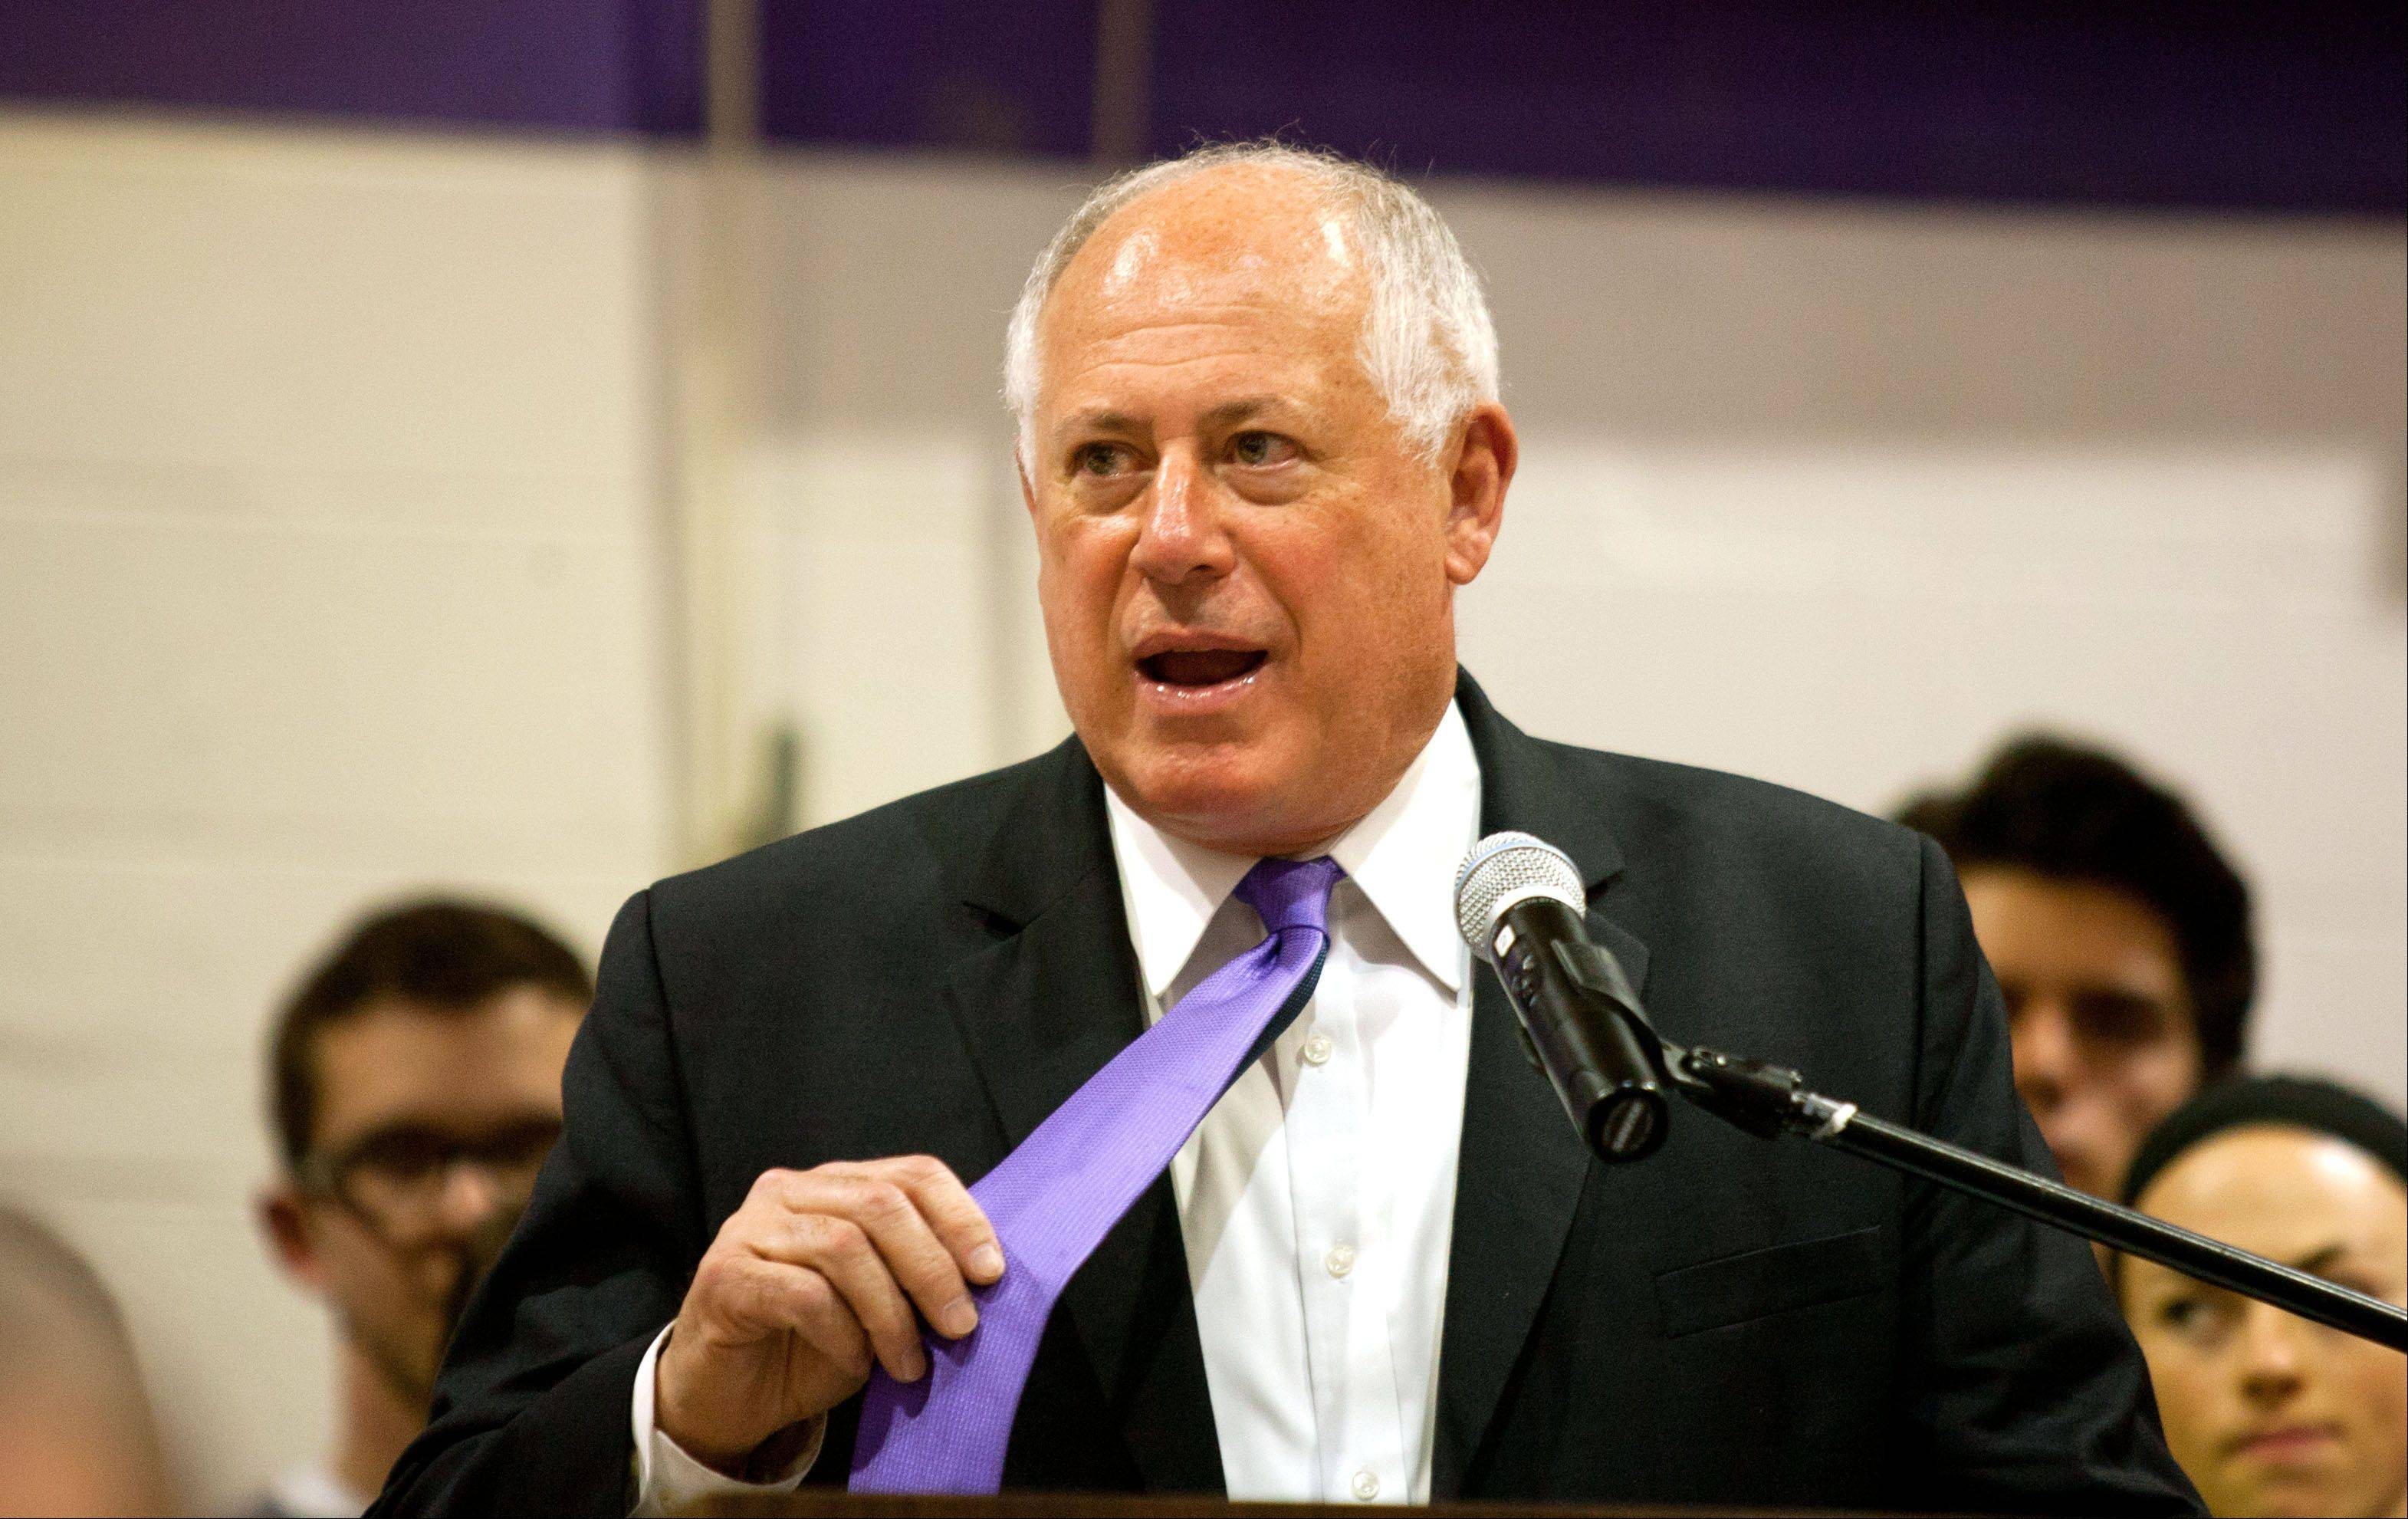 Gov. Pat Quinn, holding his lucky purple tie, said everyone should wear purple in support of Downers Grove North High School.